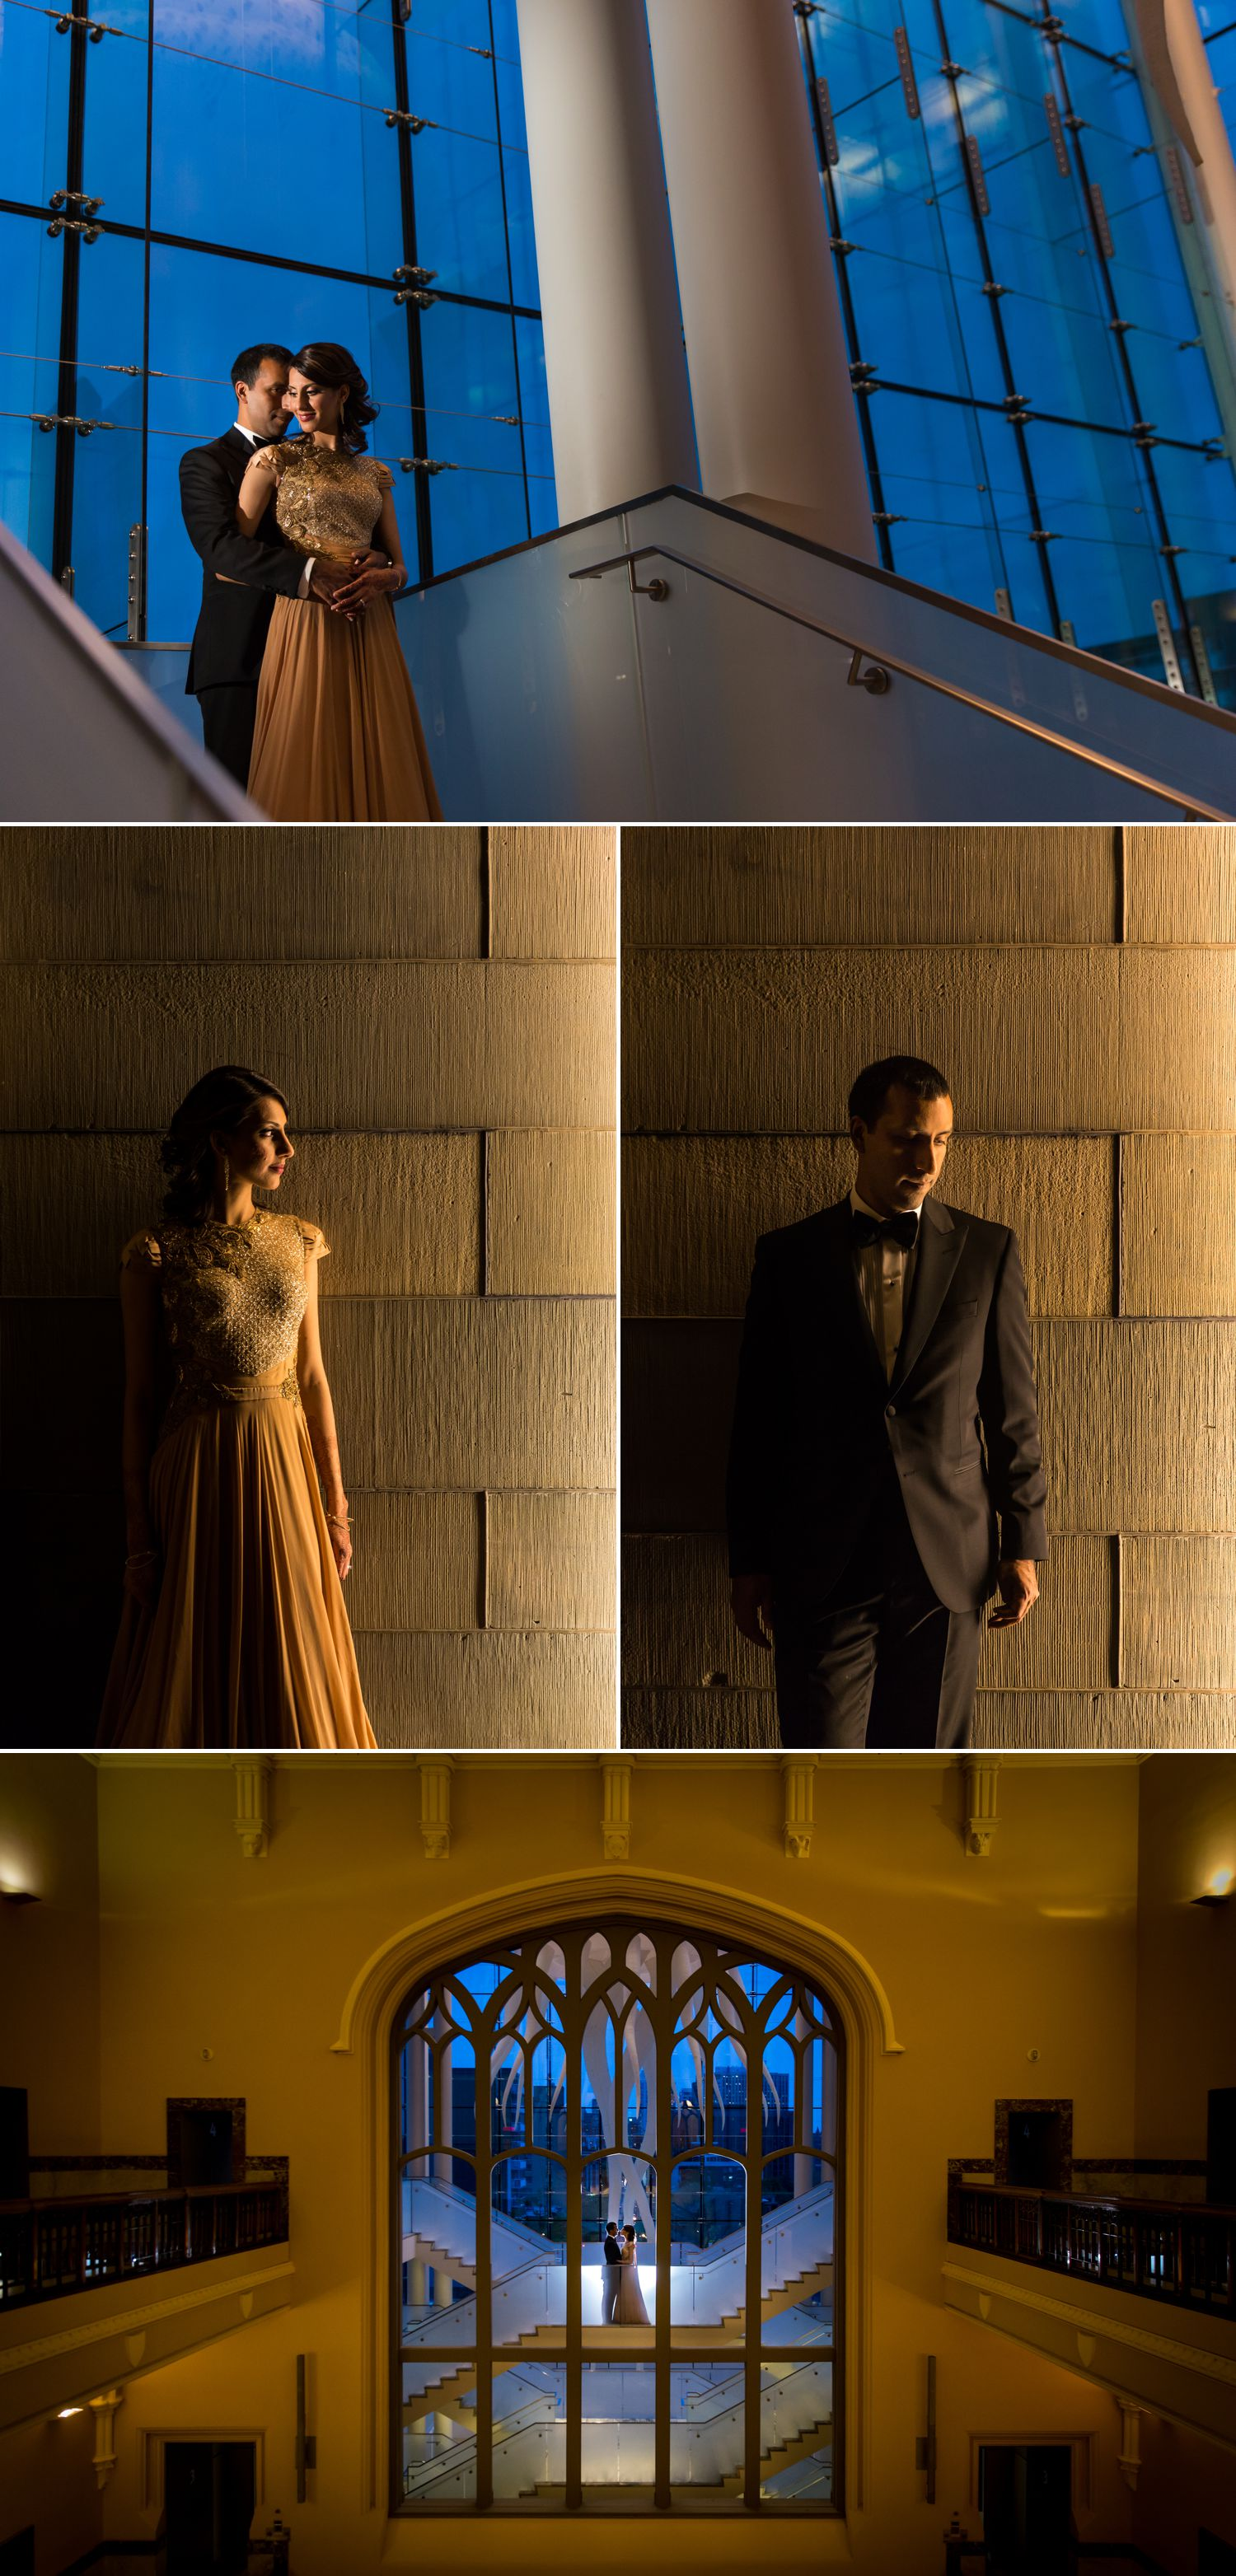 Night portraits of the bride and groom in their formal Indian reception clothes